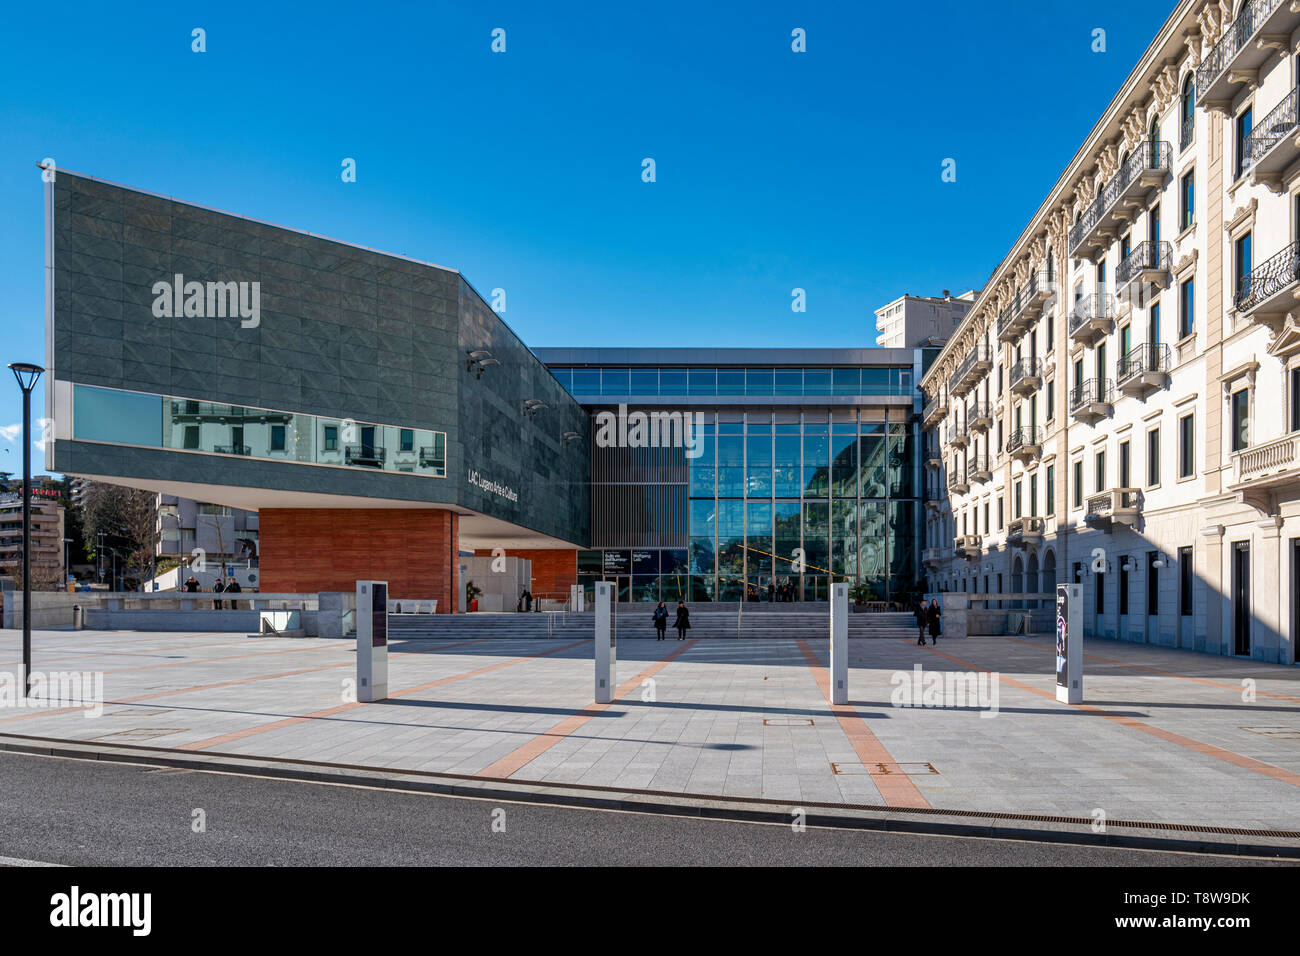 Lugano Arte e Cultura (LAC) is a cultural centre dedicated to music, visual and performance arts opened in 2015 in Lugano, Switzerland. The LAC centre Stock Photo